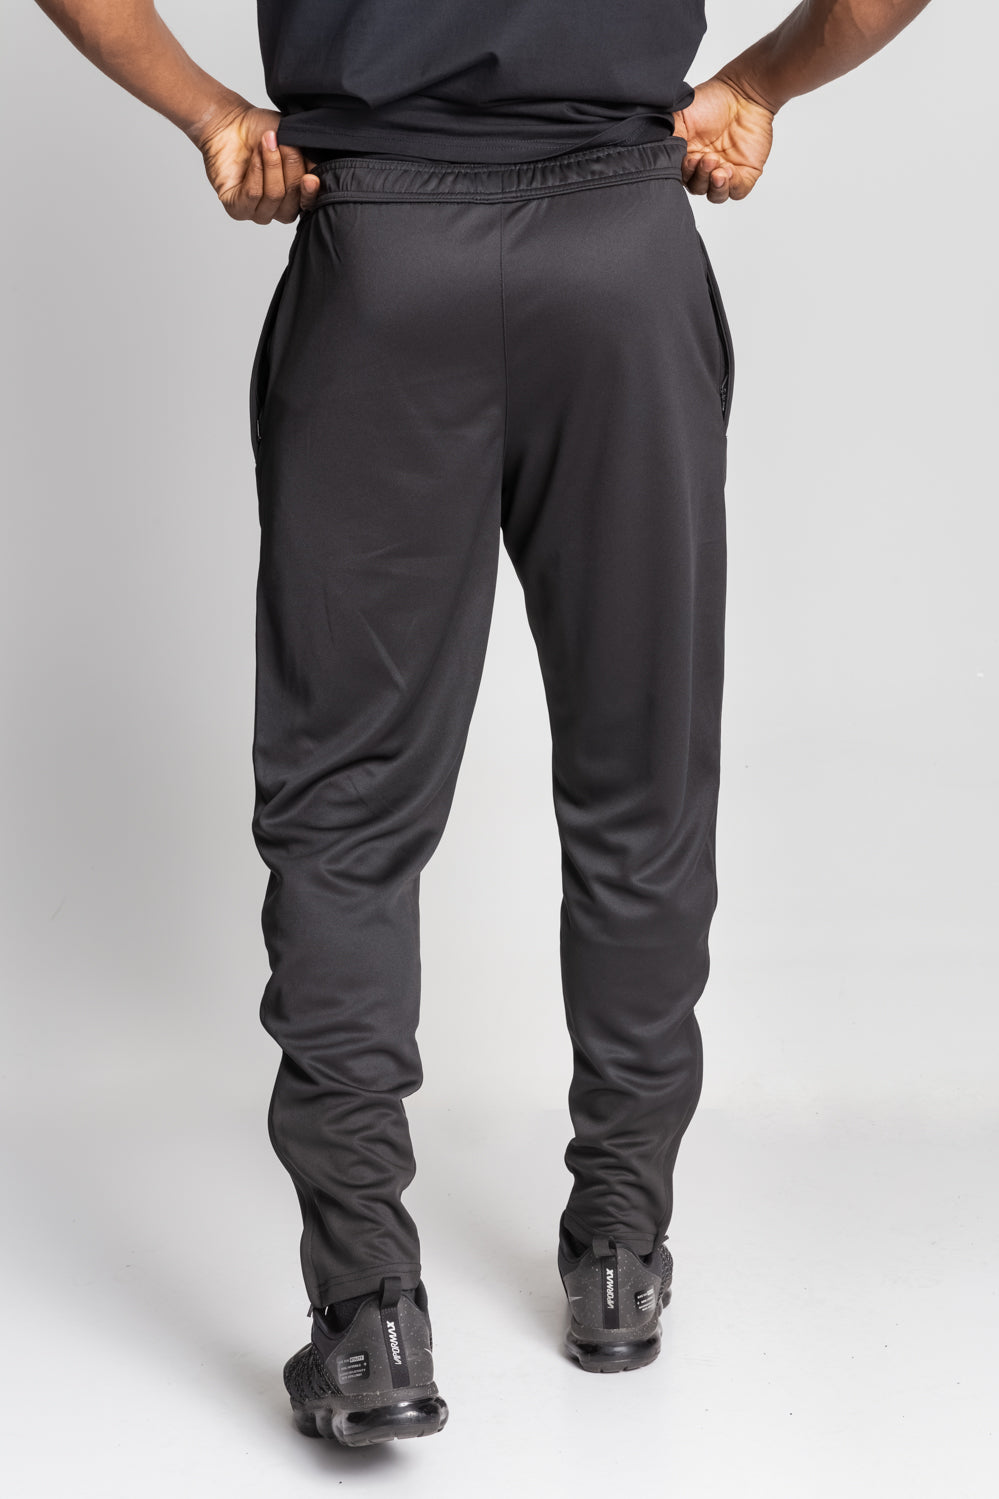 Urban Bottoms - Black